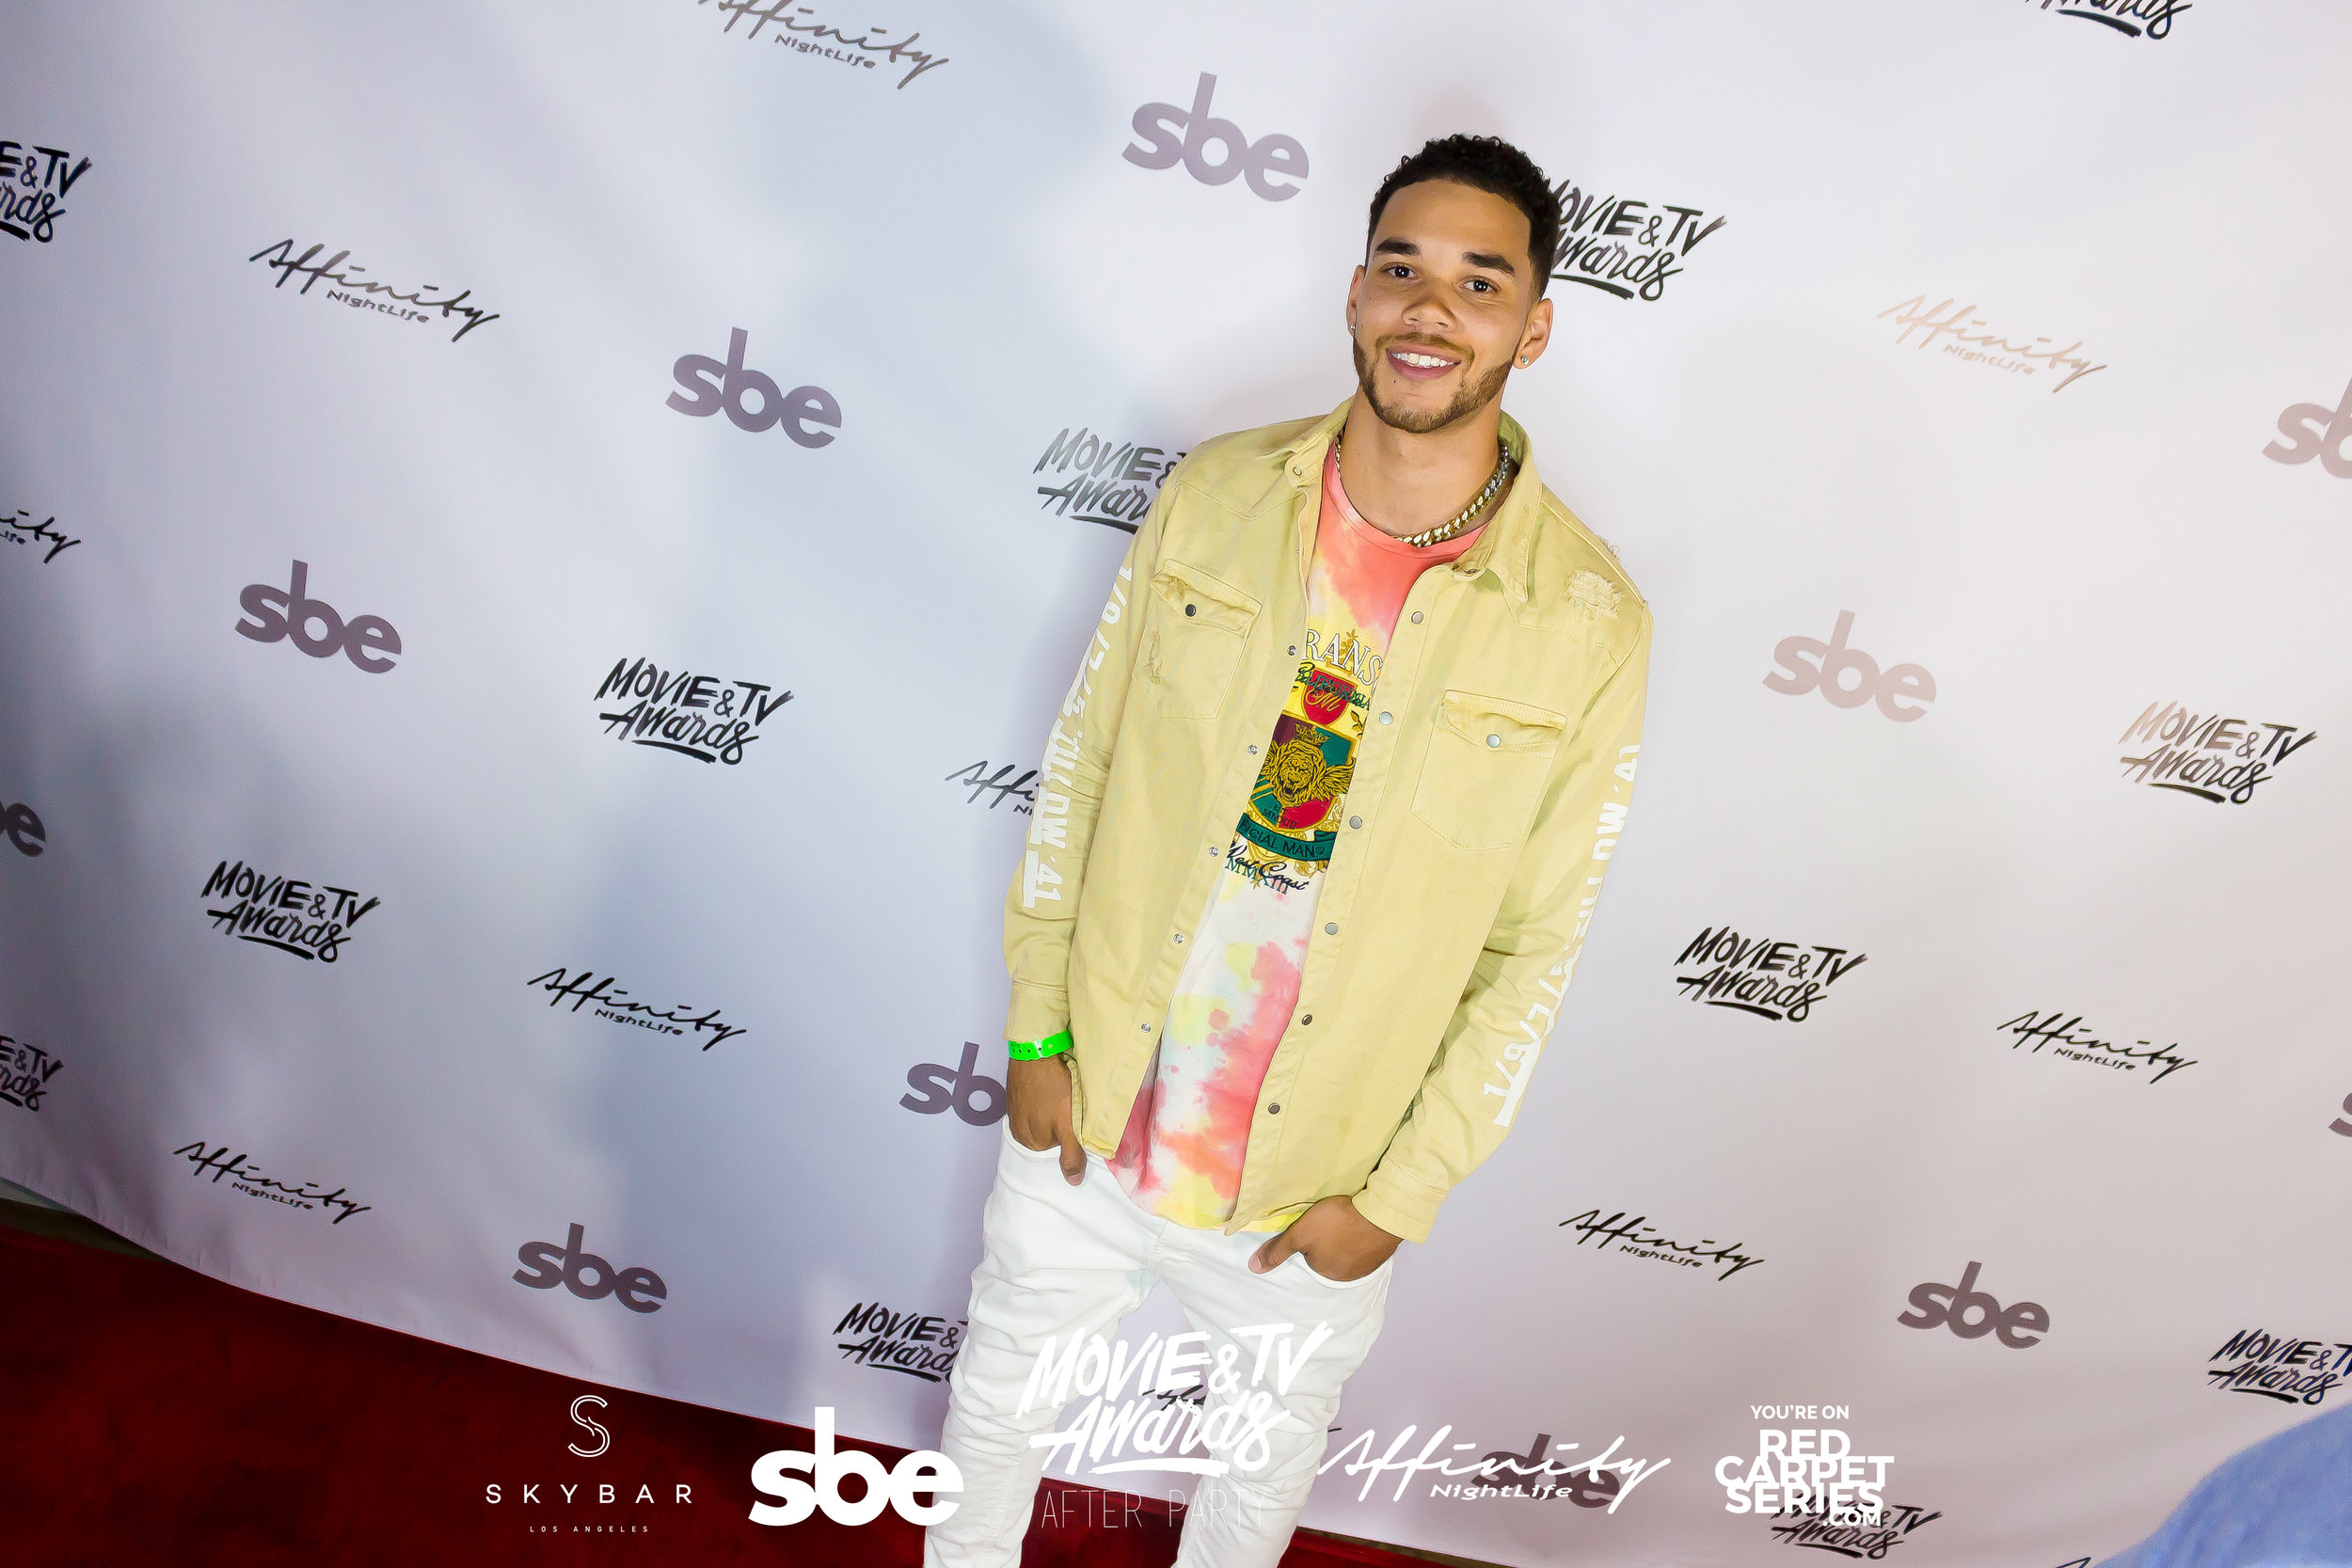 Affinity Nightlife MTV Movie & TV Awards After Party - Skybar at Mondrian - 06-15-19 - Vol. 2_12.jpg